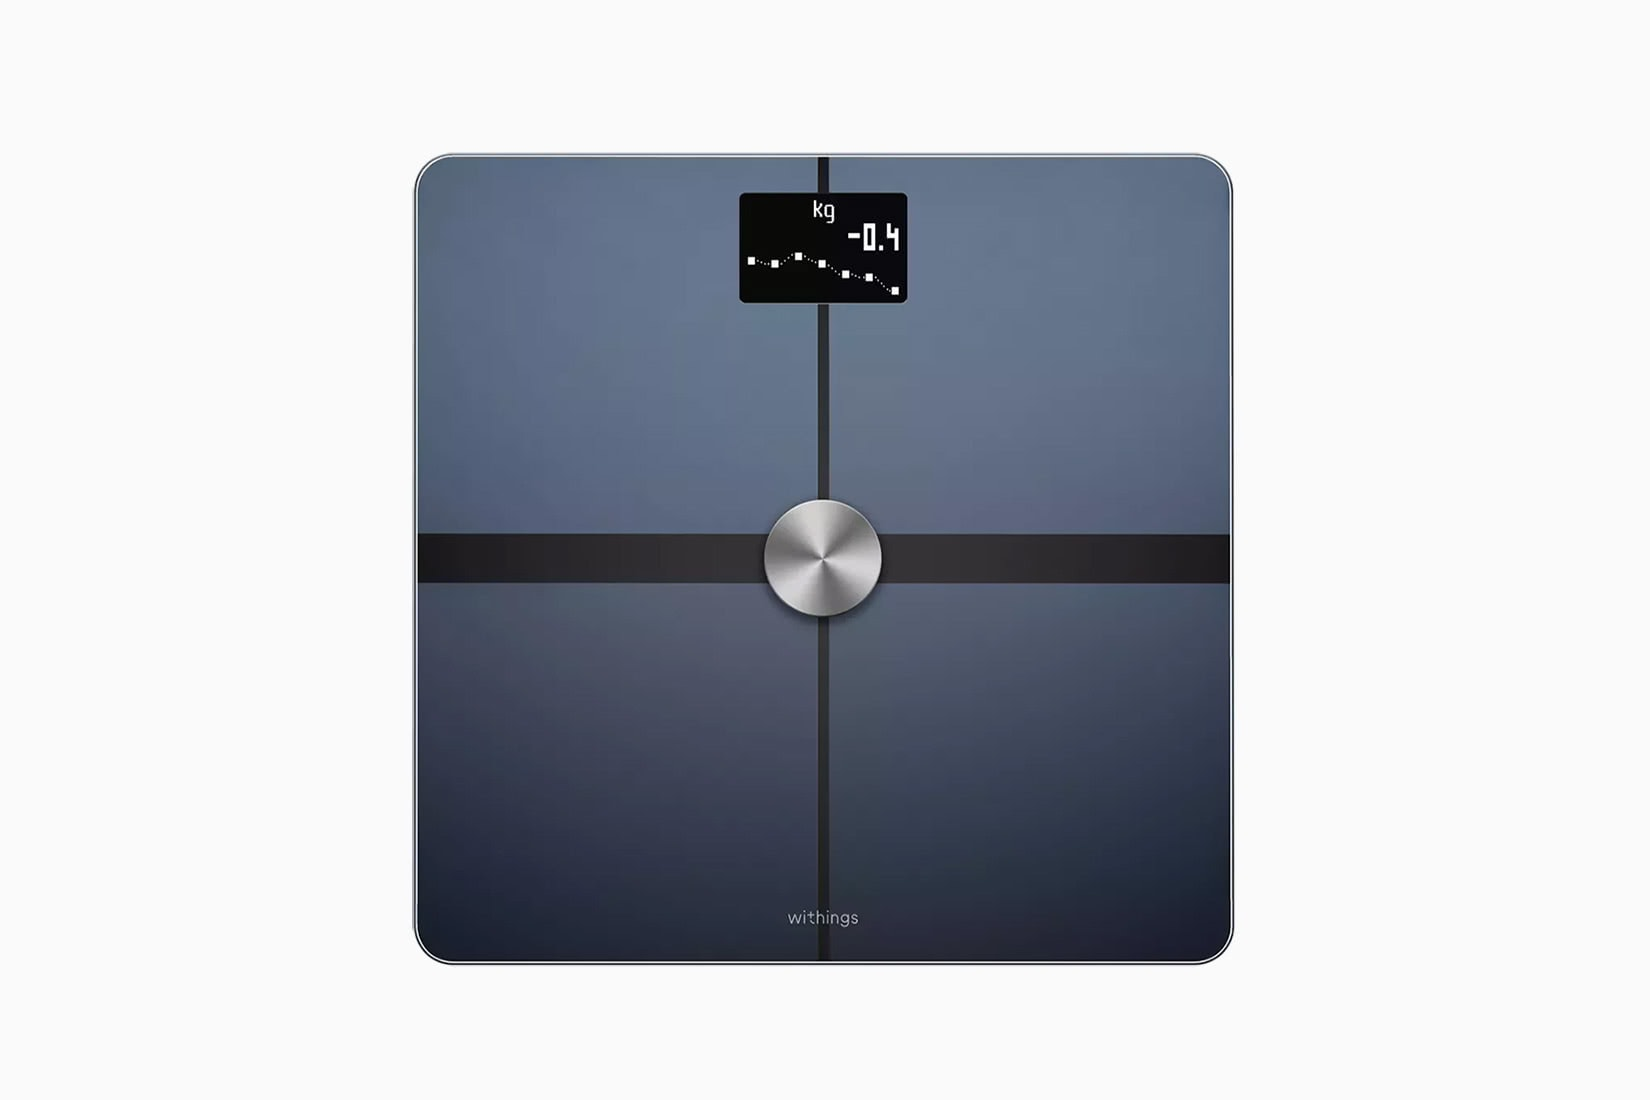 best fitness trackers weight loss Withings Scales - Luxe Digital